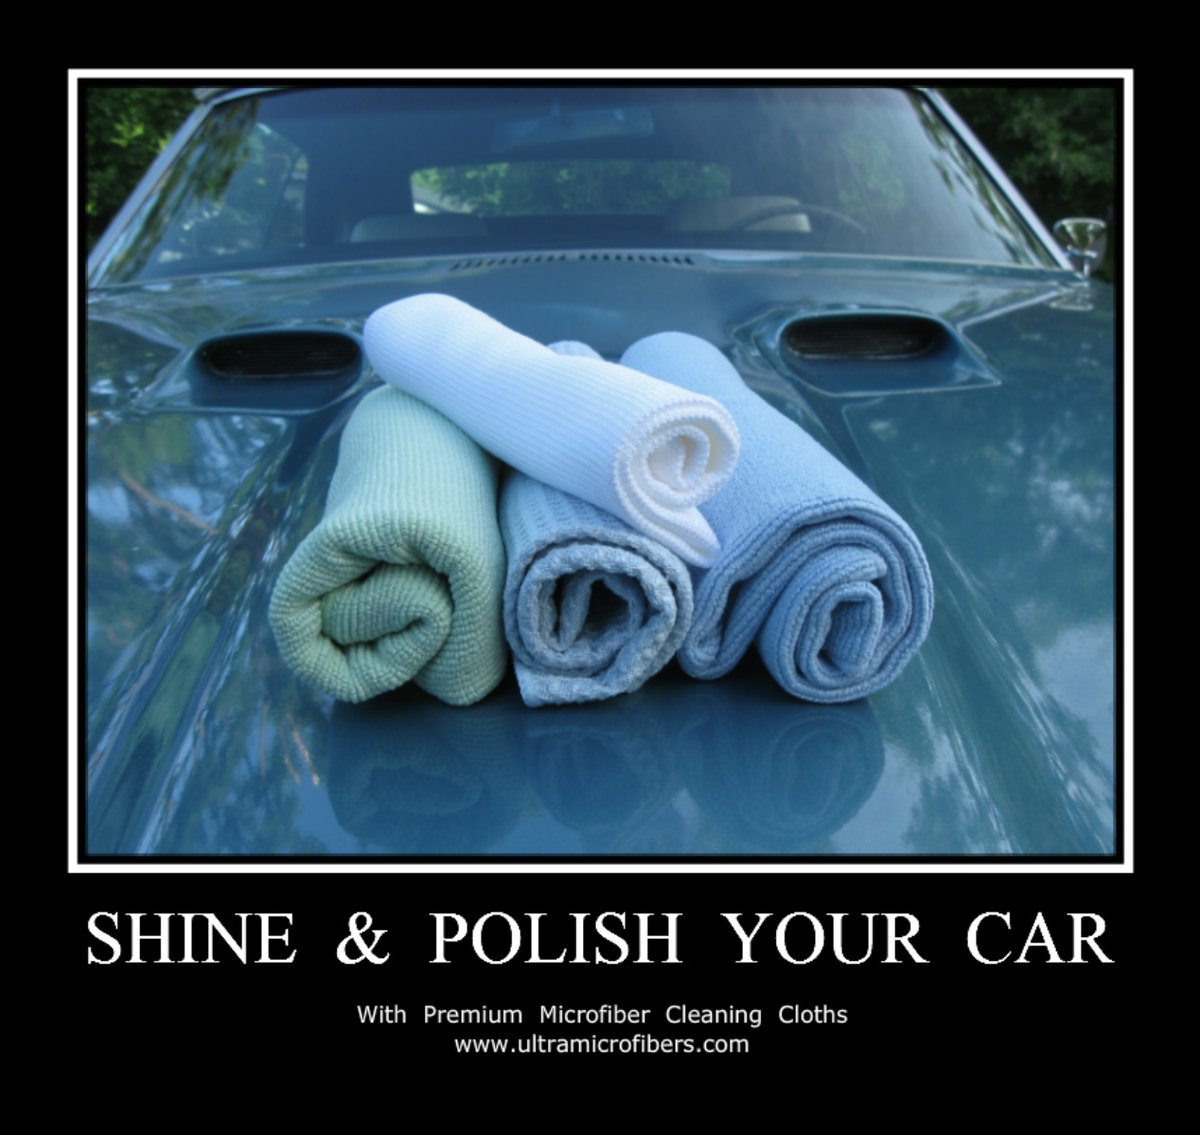 #HowTo Shine & Polish car with microfiber for cruise night http://www.ultramicrofibers.com  #autodetailing #GTO #pontiacGTO #classic #car cleaning #MuscleCar #Detailing  #washcar #CarDetailing #Detailing #tesla #classiccar #springcleaning #carshow #carwashpic.twitter.com/2yW2l3dQ0d